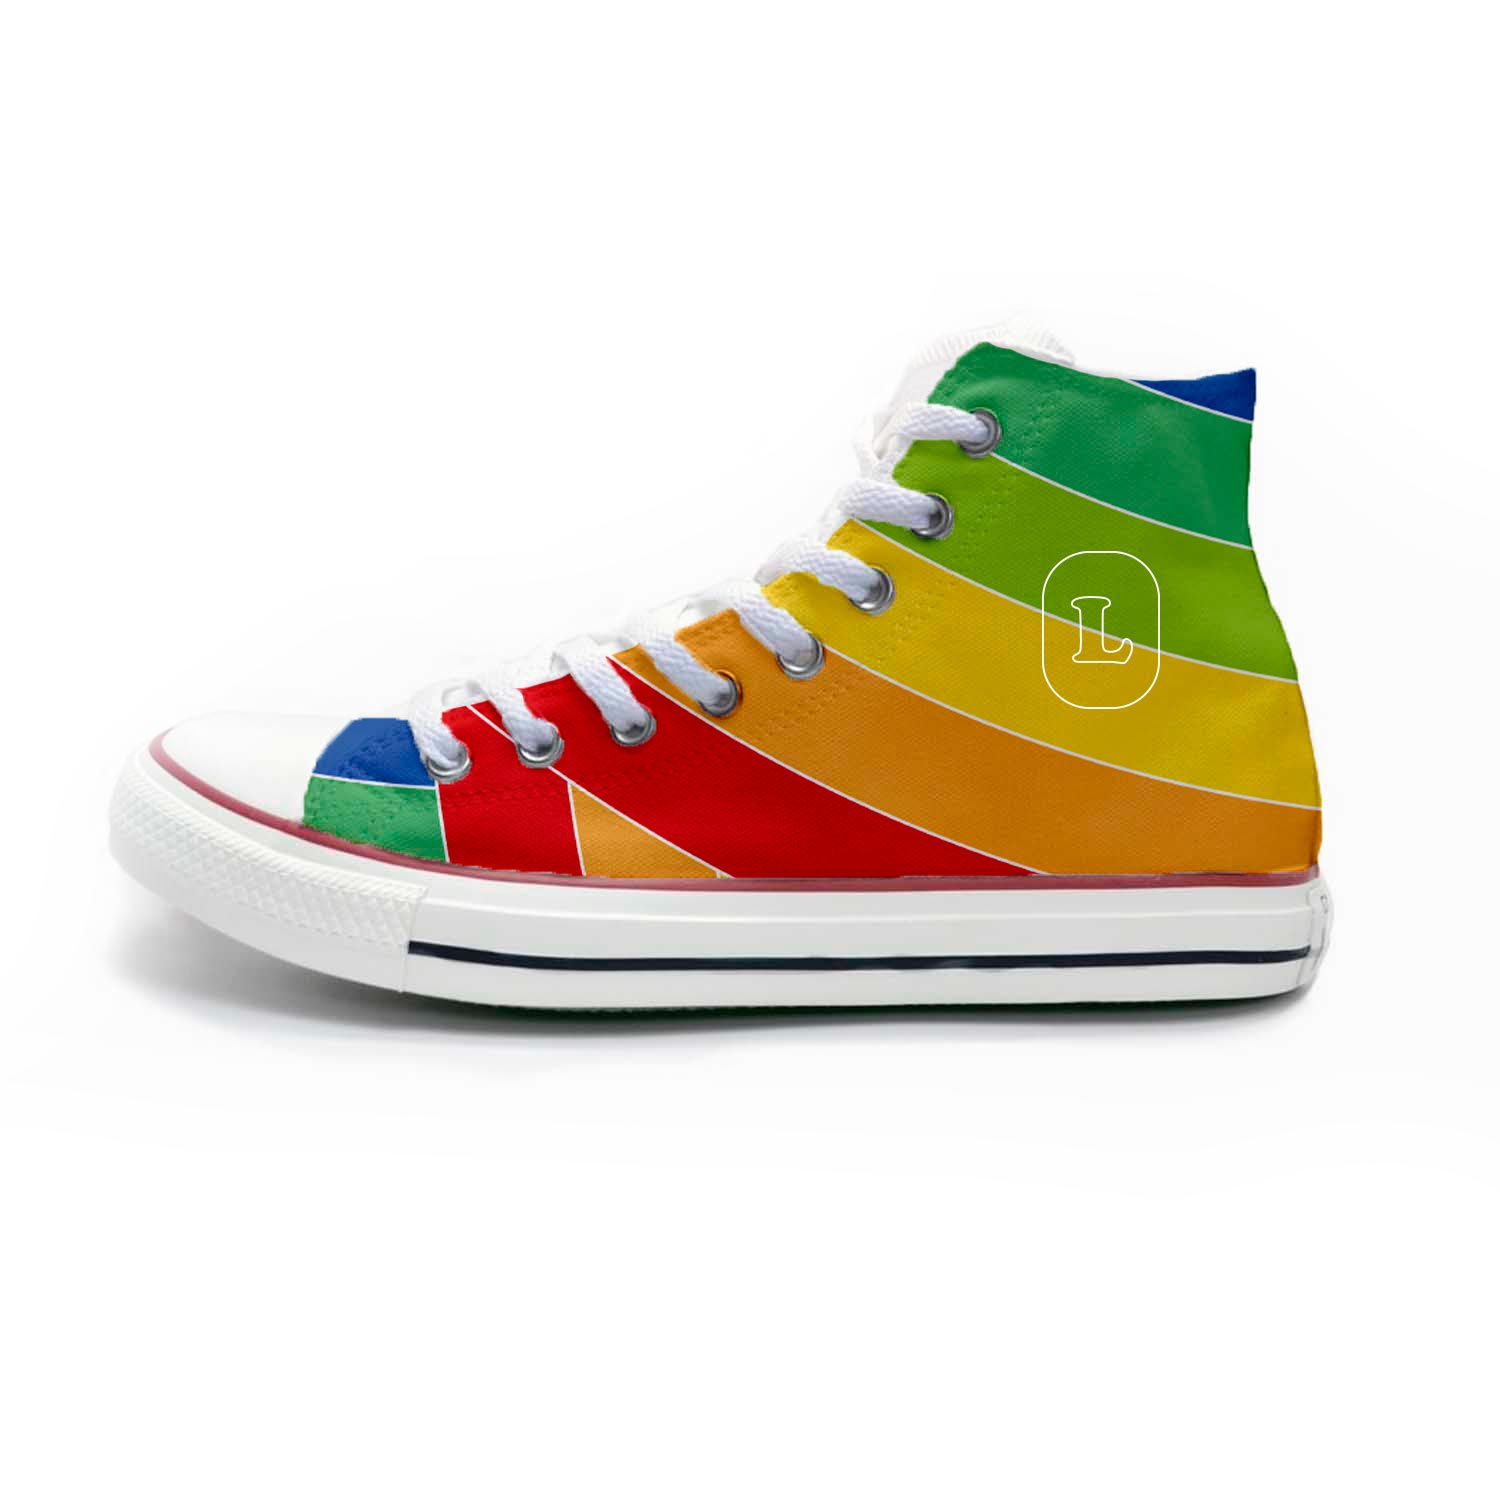 223984 hightop chucks white converse full color imprint